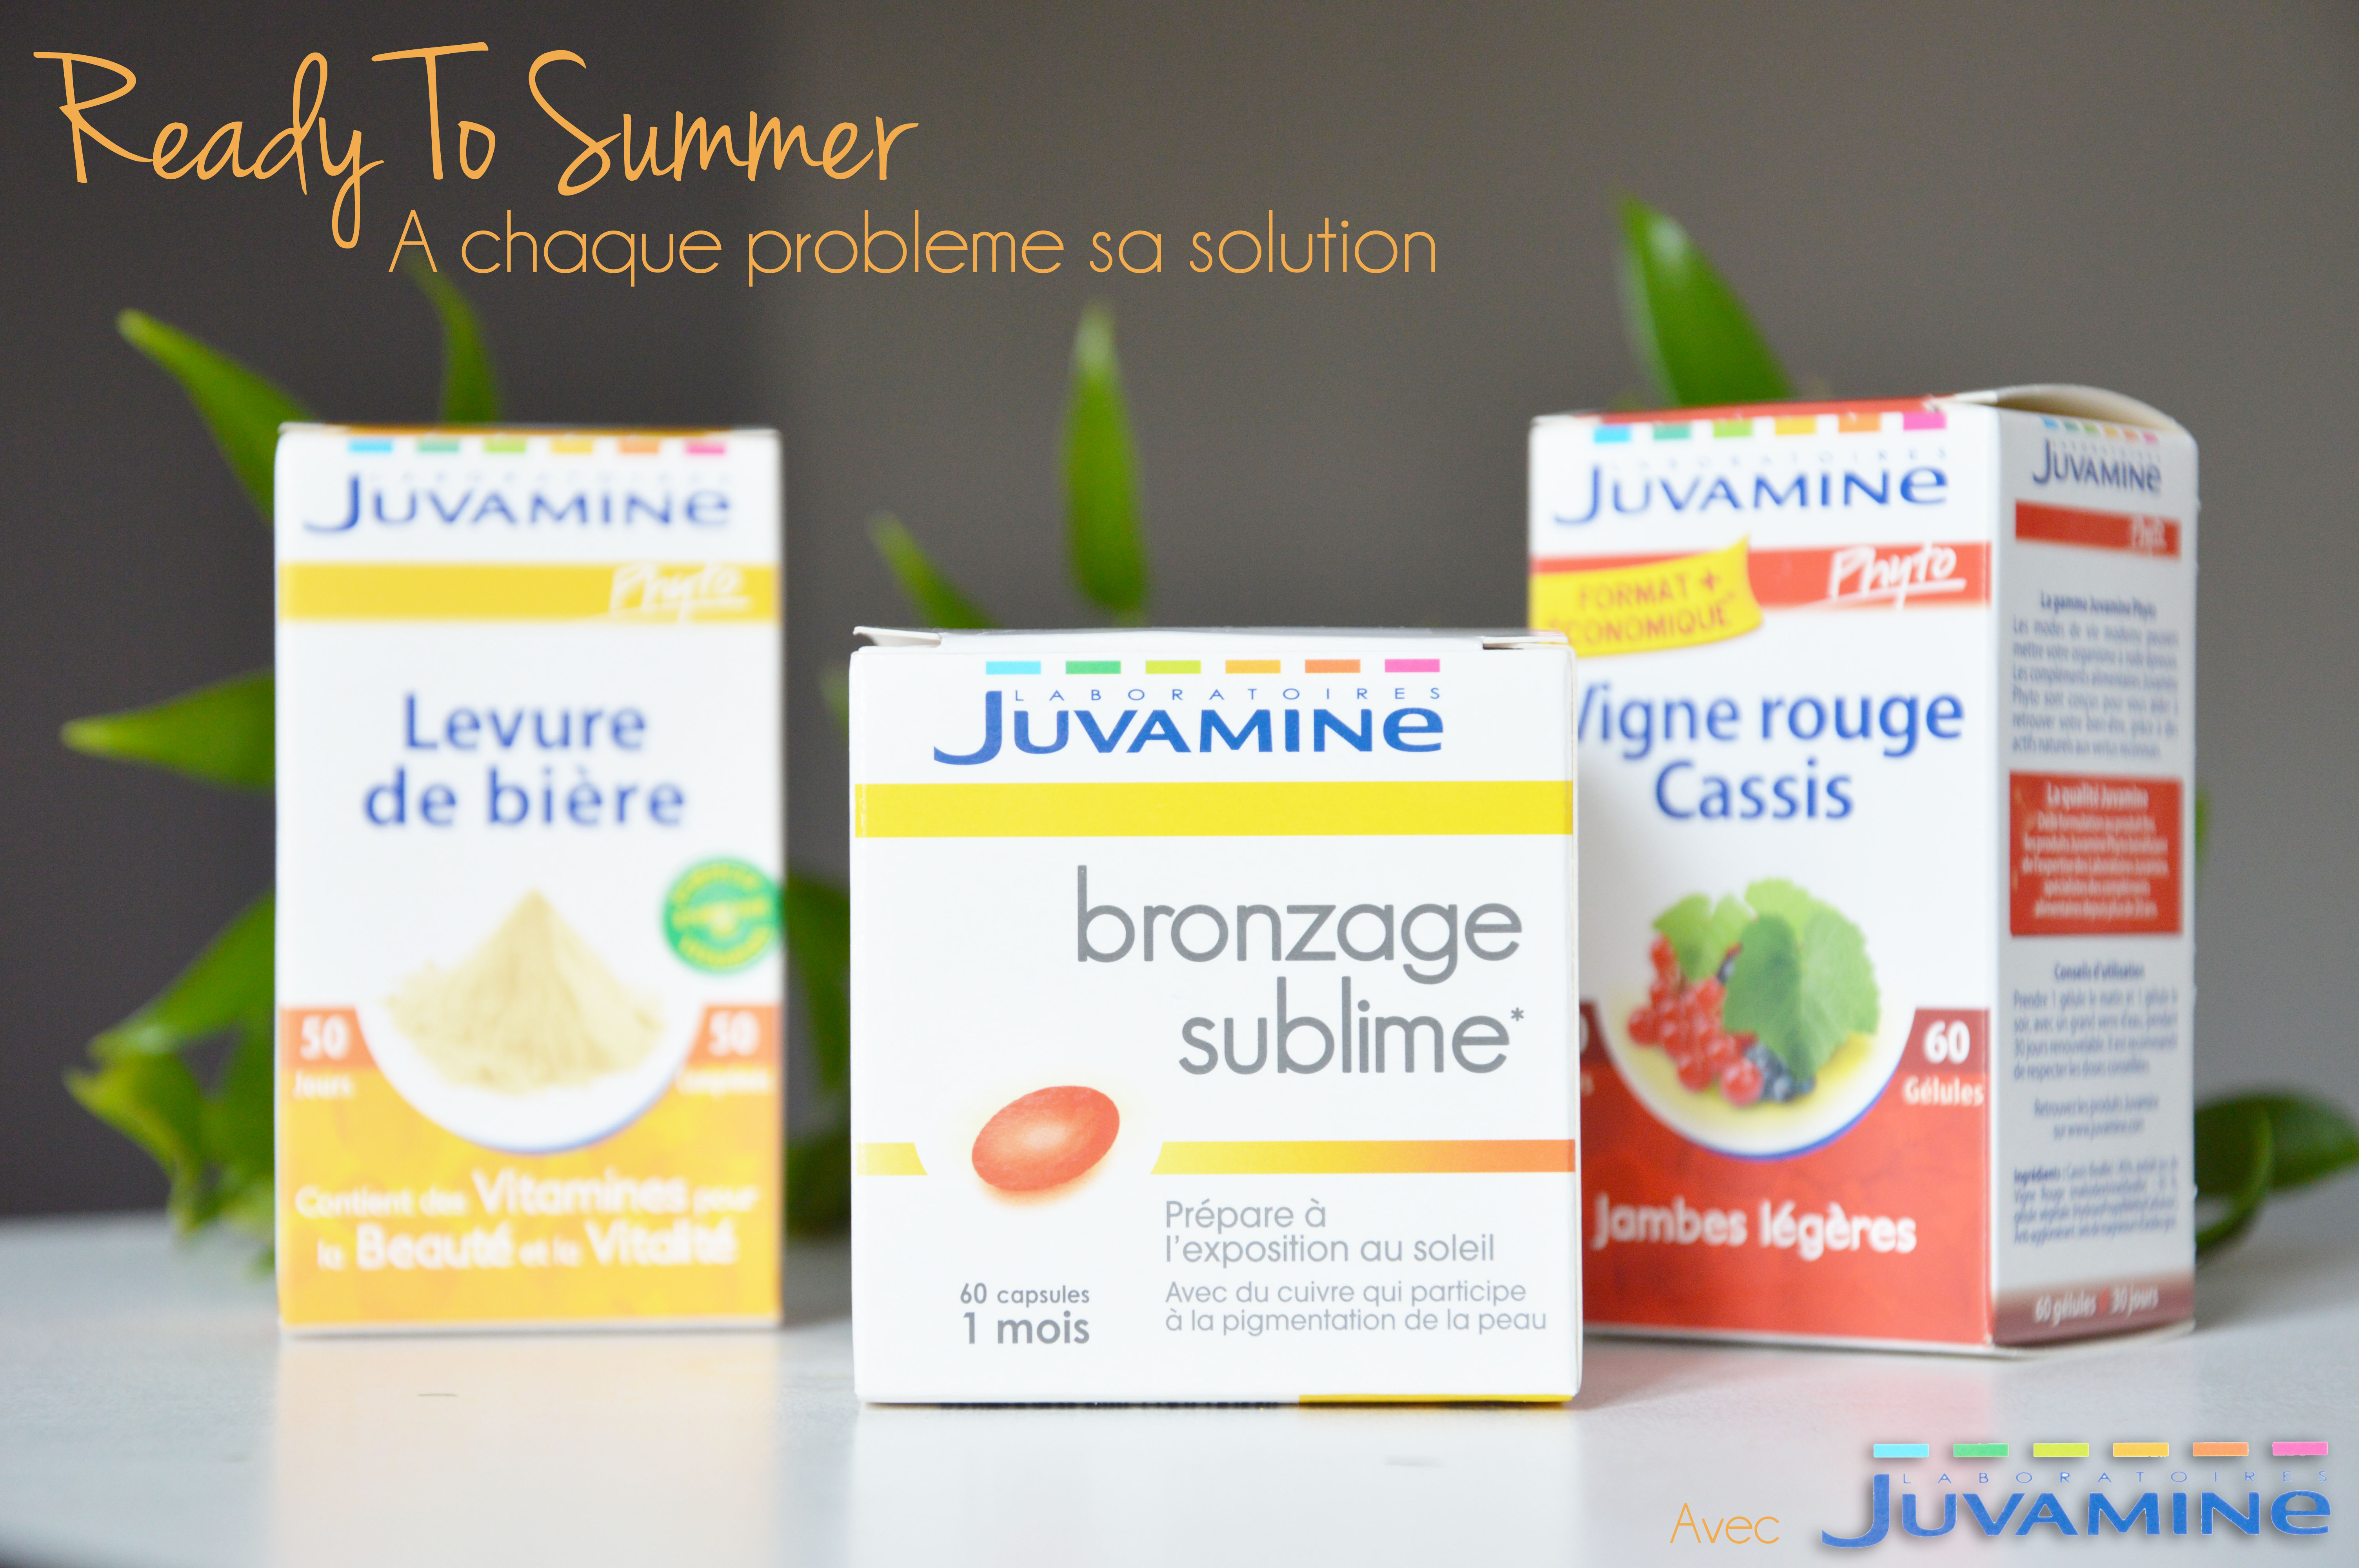 ALITTLEB_BLOG_BEAUTE_JUVAMINE_COMPLEMENTS_ALIMENTAIRES_REVUE